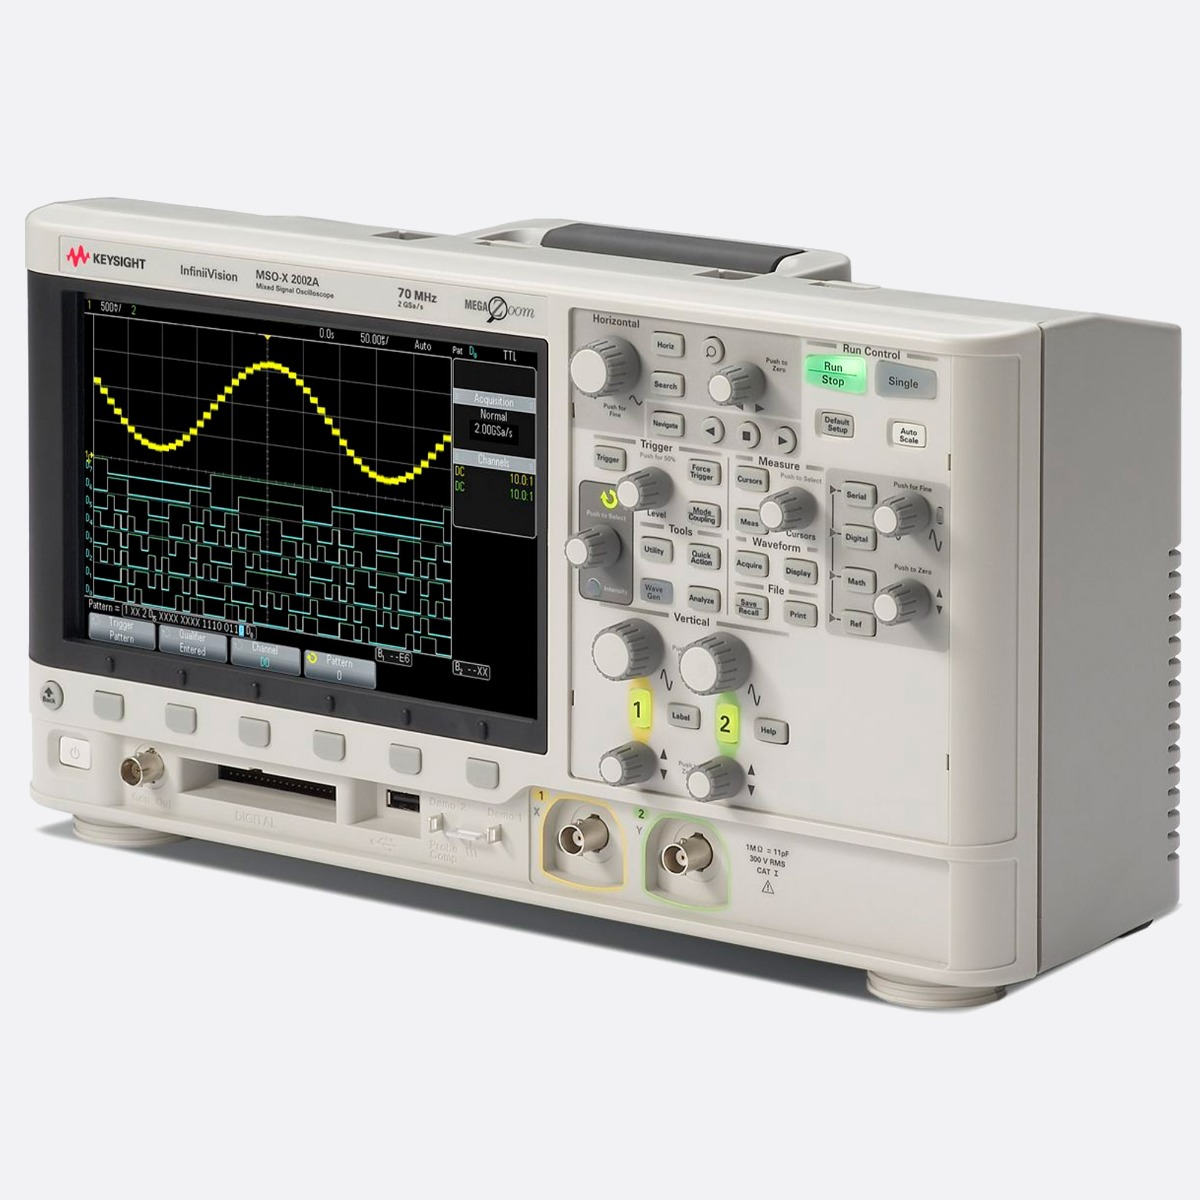 Keysight_MSOX2002A_front_right_Ccontrols